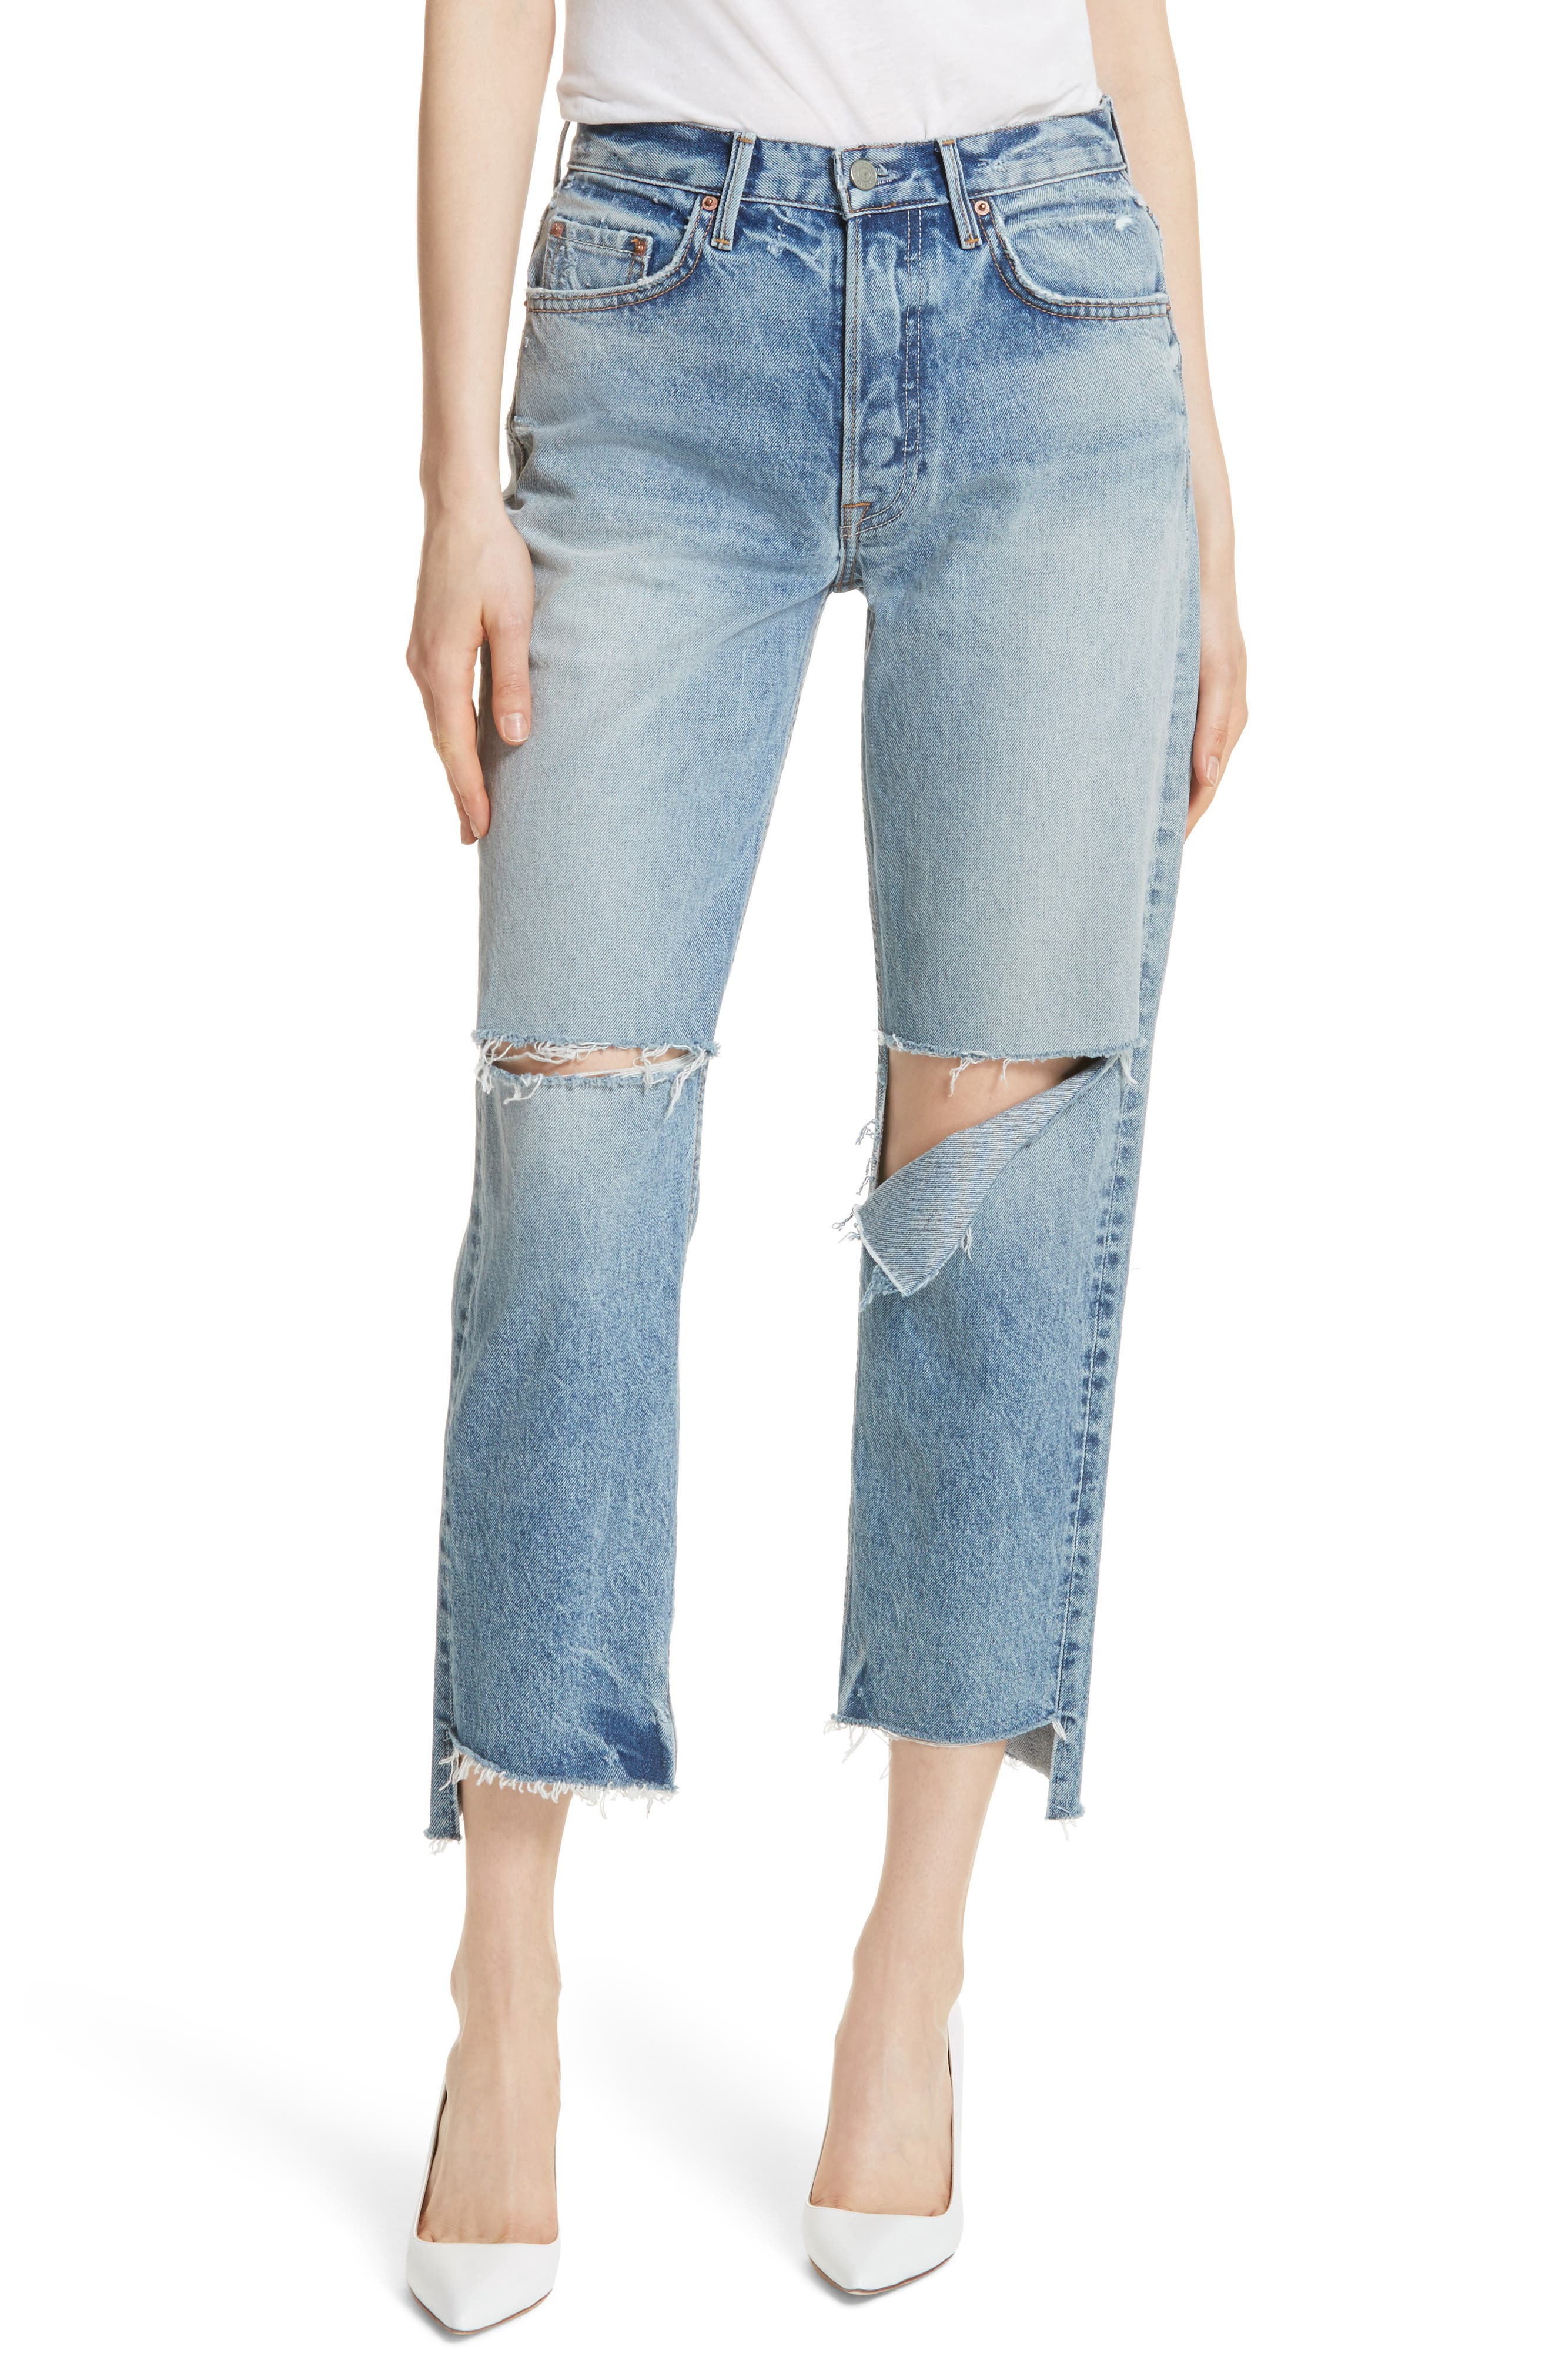 Helena Ripped Rigid High Waist Straight Jeans,                             Main thumbnail 1, color,                             All Cut Up